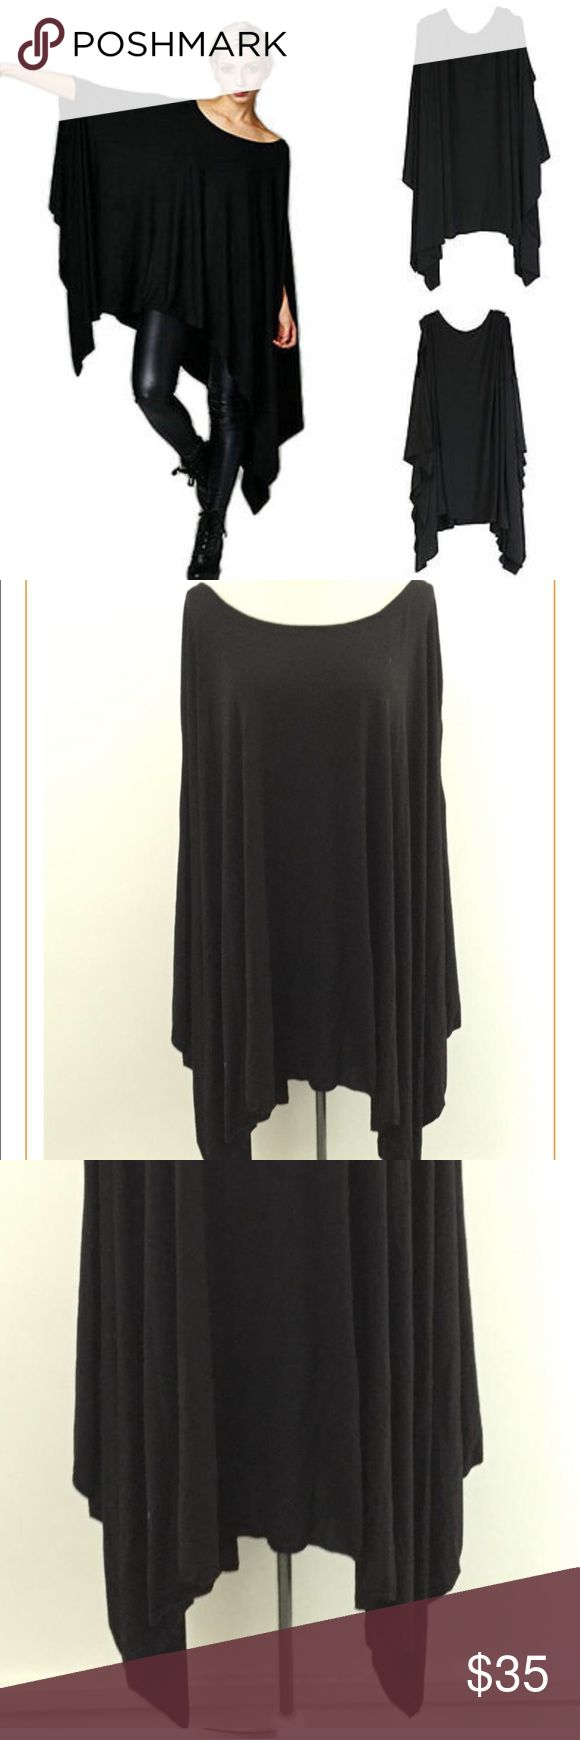 💕stunning Plus Size Loose Batwing Asymmetric Asymmetrical  plus size Loose Women Dress or top Plus Size Cloak Dress Girls Casual Batwing Sleeve T Shirt Dress Vestidos Specifics Plus size  WaistlineLoose Sleeve StyleBatwing Sleeve Pattern TypeSolid black  StyleCasual MaterialCotton blend  NecklineO-Neck SilhouetteAsymmetrical Sleeve LengthThree quarters  No tickets  was in show room as sample new condition 2x but it's great for size fits all plus as it's runs big and loose 💕as a…